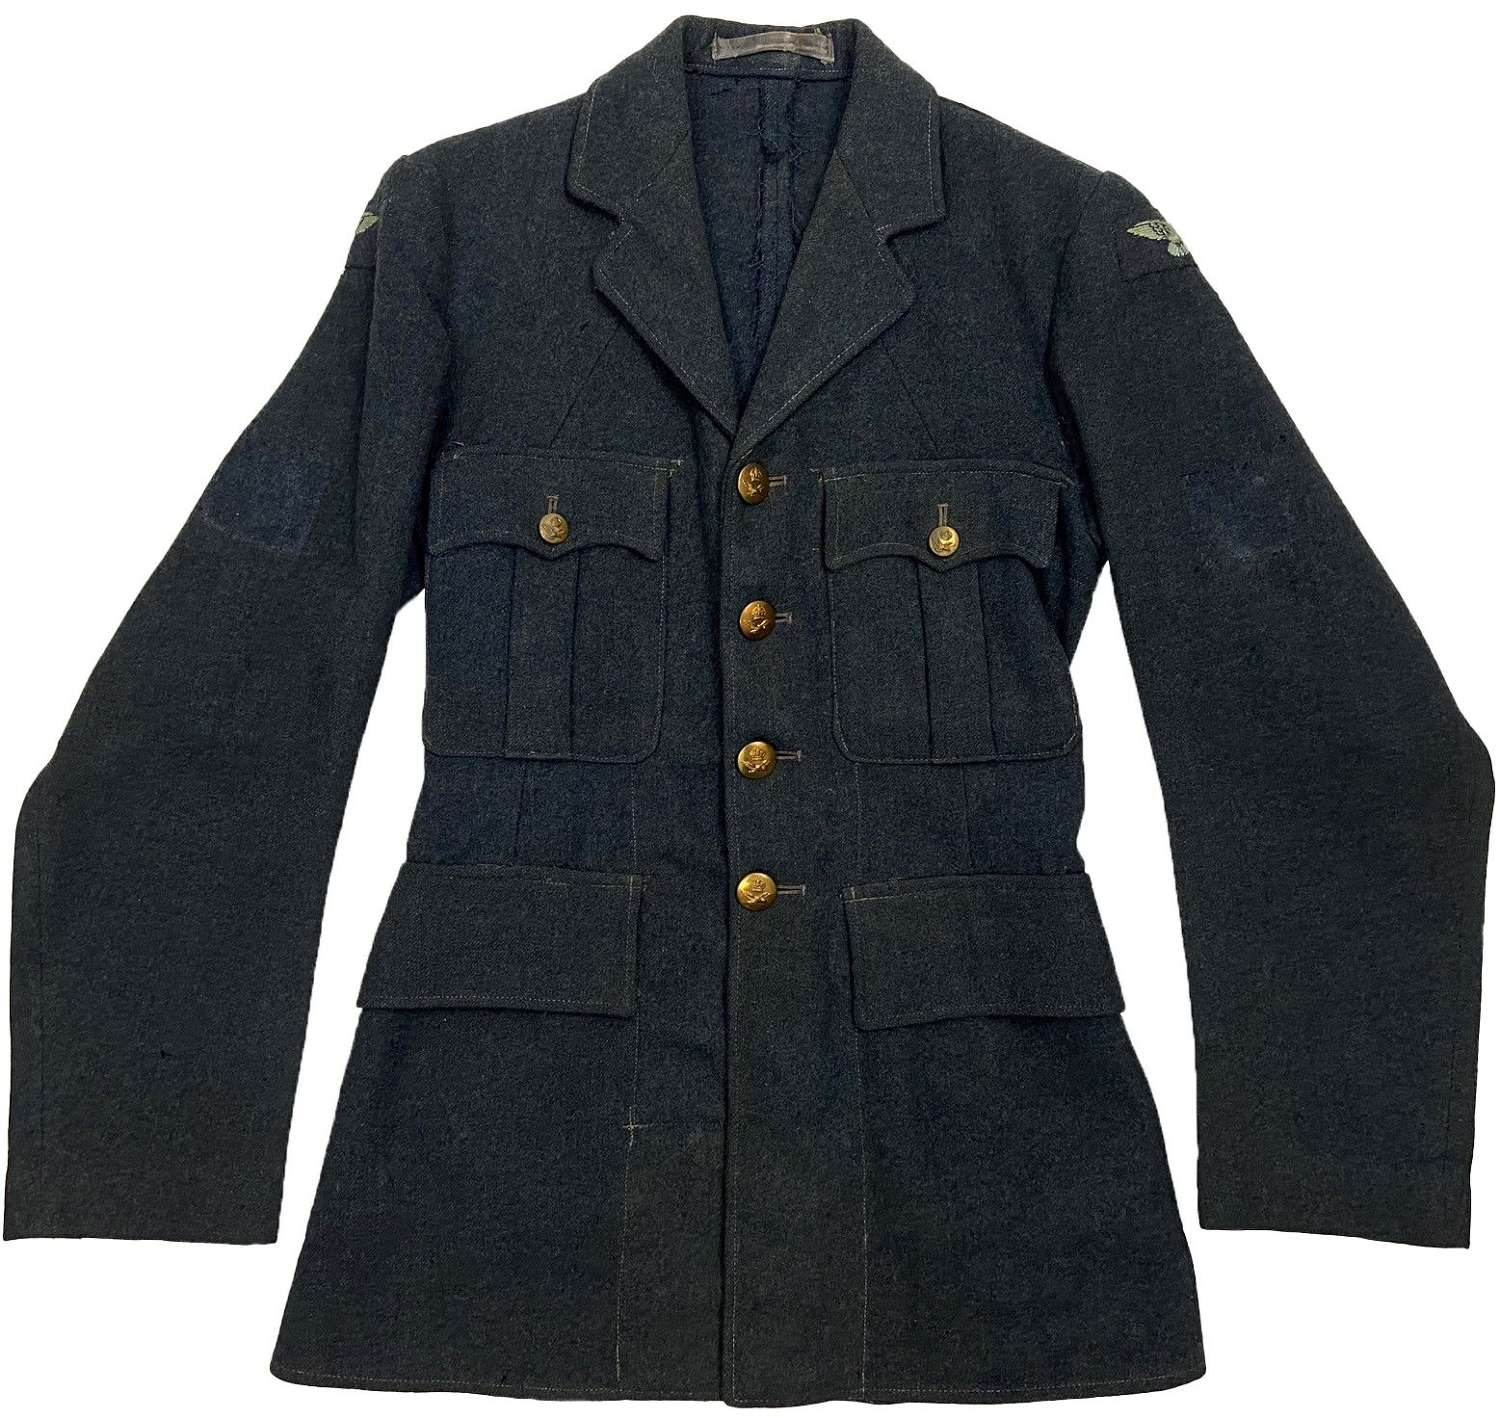 Original 1950 Dated RAF Ordinary Airman's Tunic - Size 7